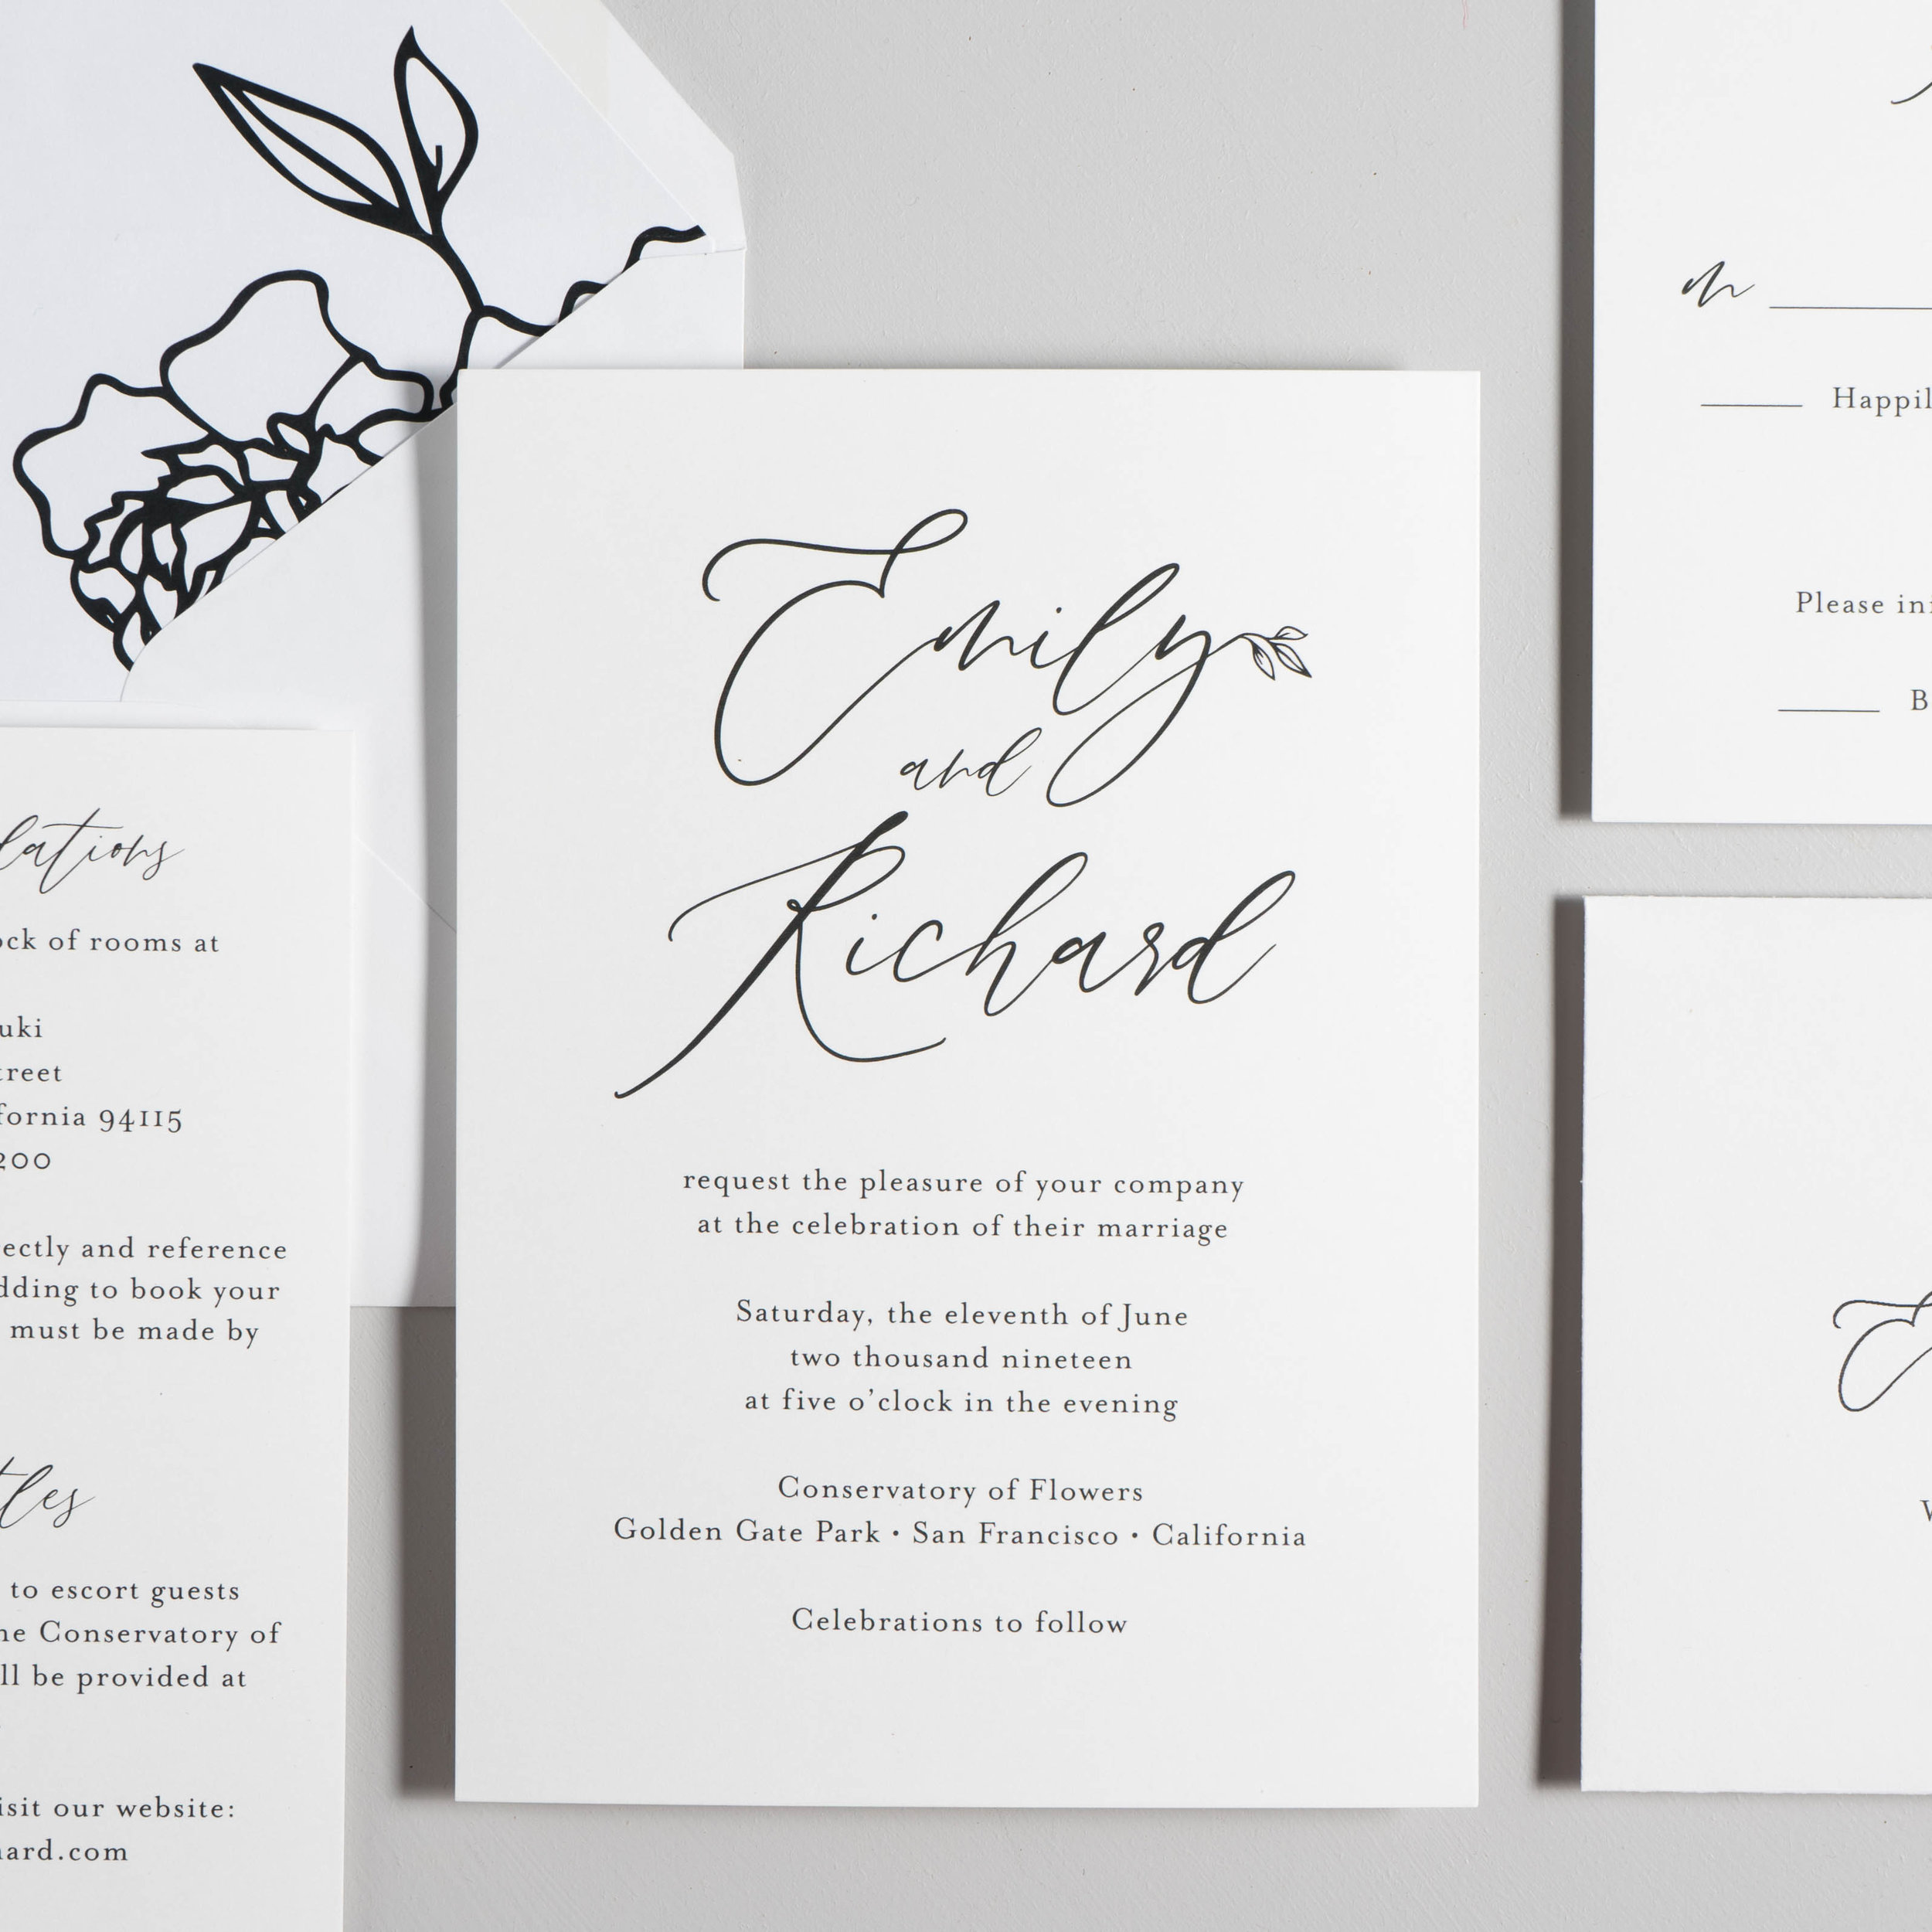 *Minimalist Leaf Wedding Invitations by Just Jurf-7.jpg